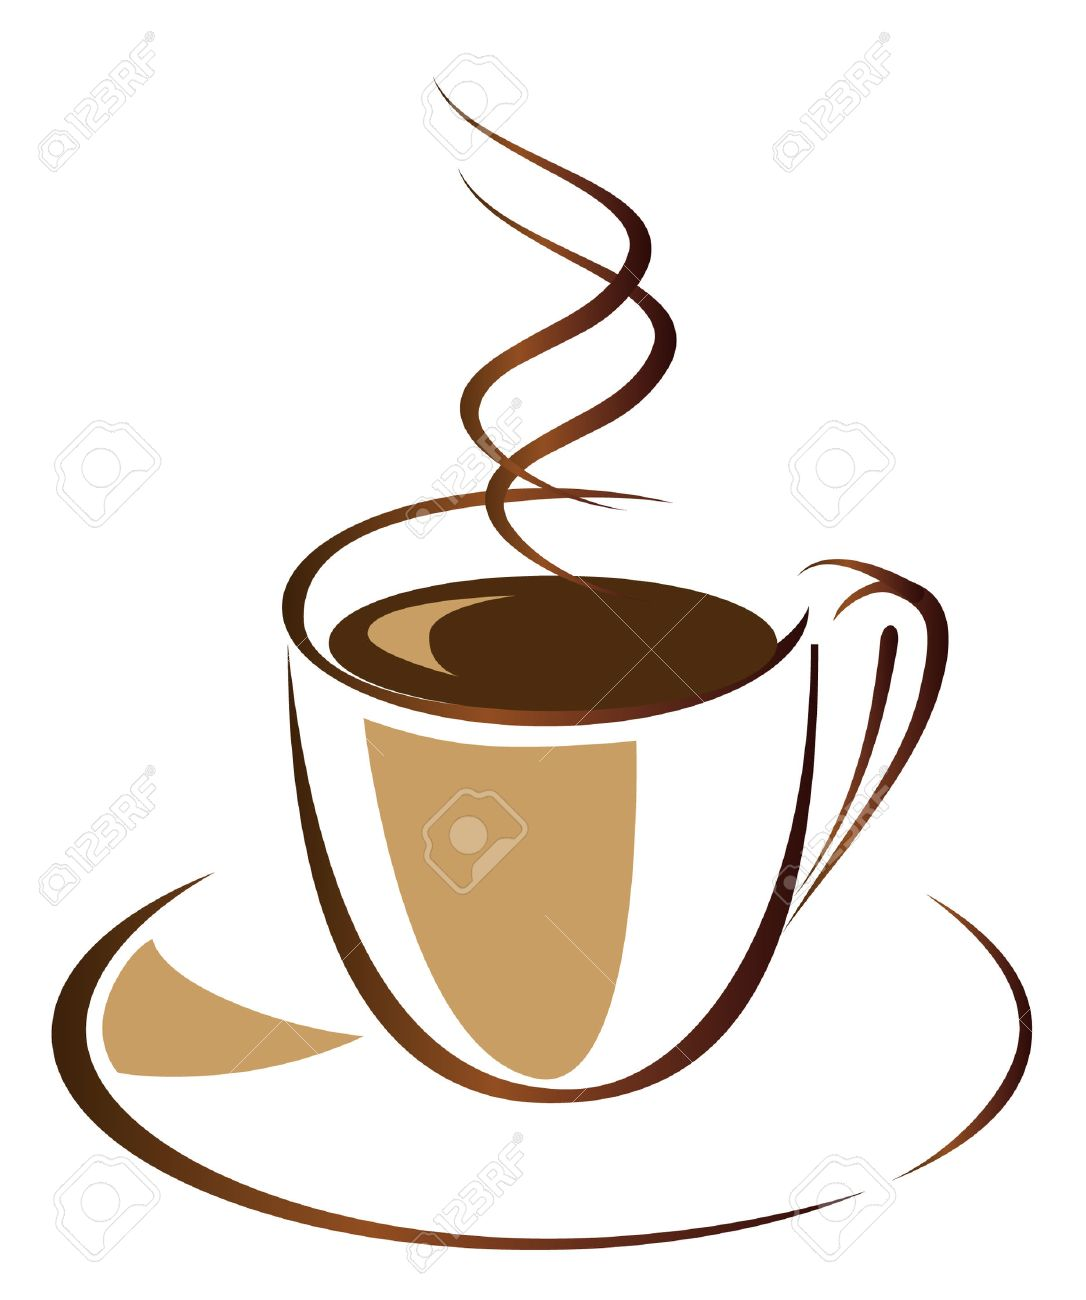 black coffee in white cup vector illustration royalty free cliparts rh 123rf com cup vector ai cup vector art